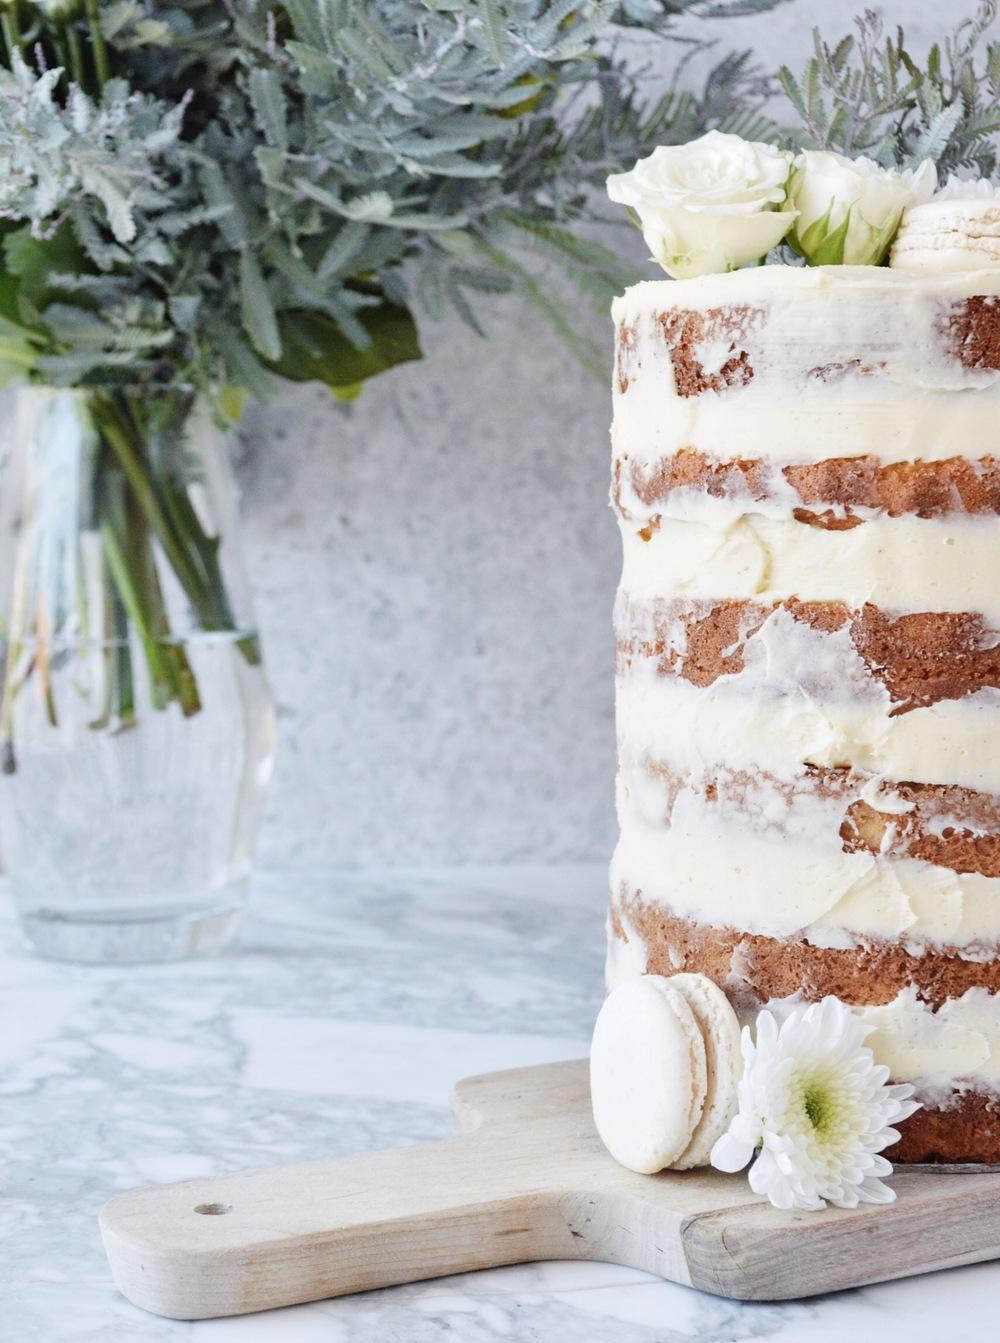 Orange yoghurt layer cake